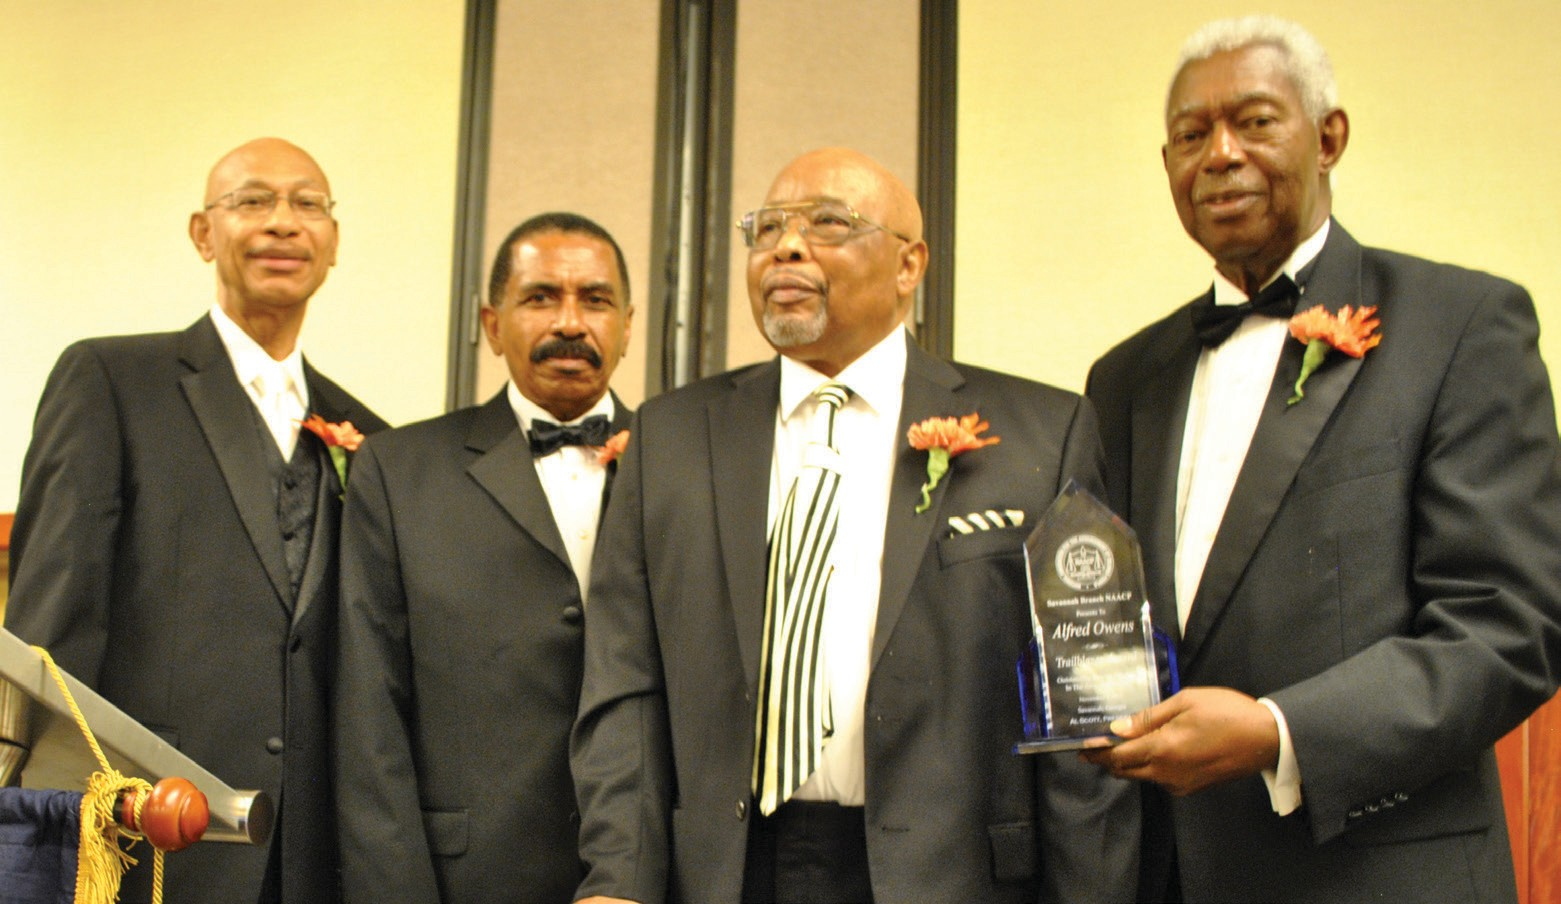 L to R: Former Mayor Otis Johnson, Savannah Branch NAACP President Al Scott, Honoree Alfred Owens recipient of the 2013 Freedom Fund Award, Savannah Branch NAACP Vice President Richard Shinhoster.